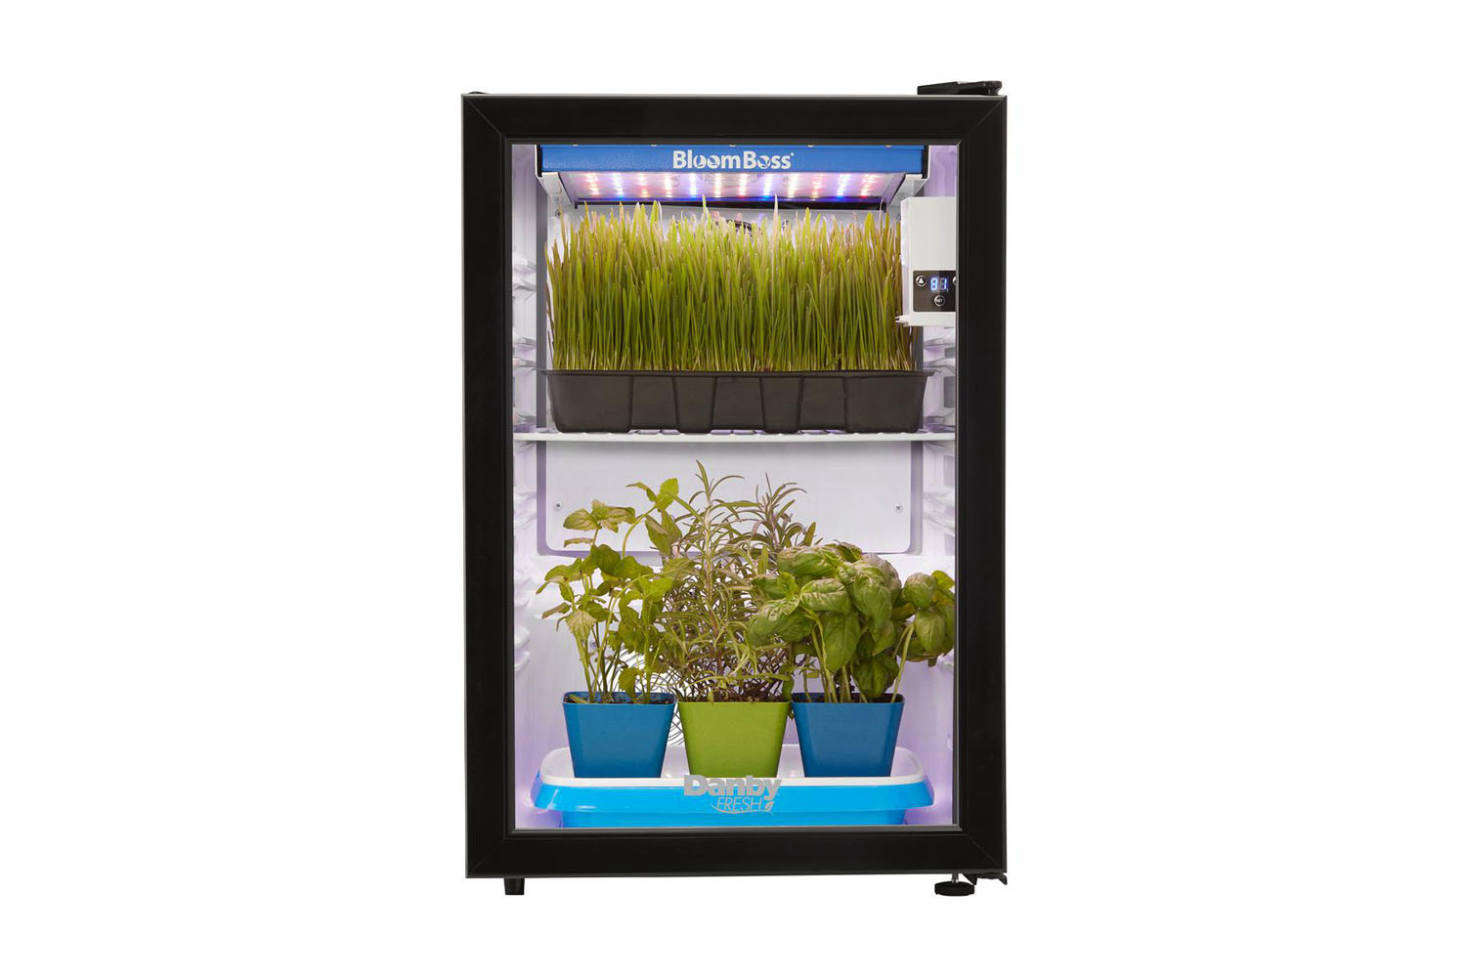 For a more robust herb growing operation, the Danby Herb Grower with -Watt LED BloomBoss Lighting is the size of a mini fridge that includes a grow light, fan-assisted air circulation, wire shelves, and a digital timer for light cycles; $399 at The Home Depot.